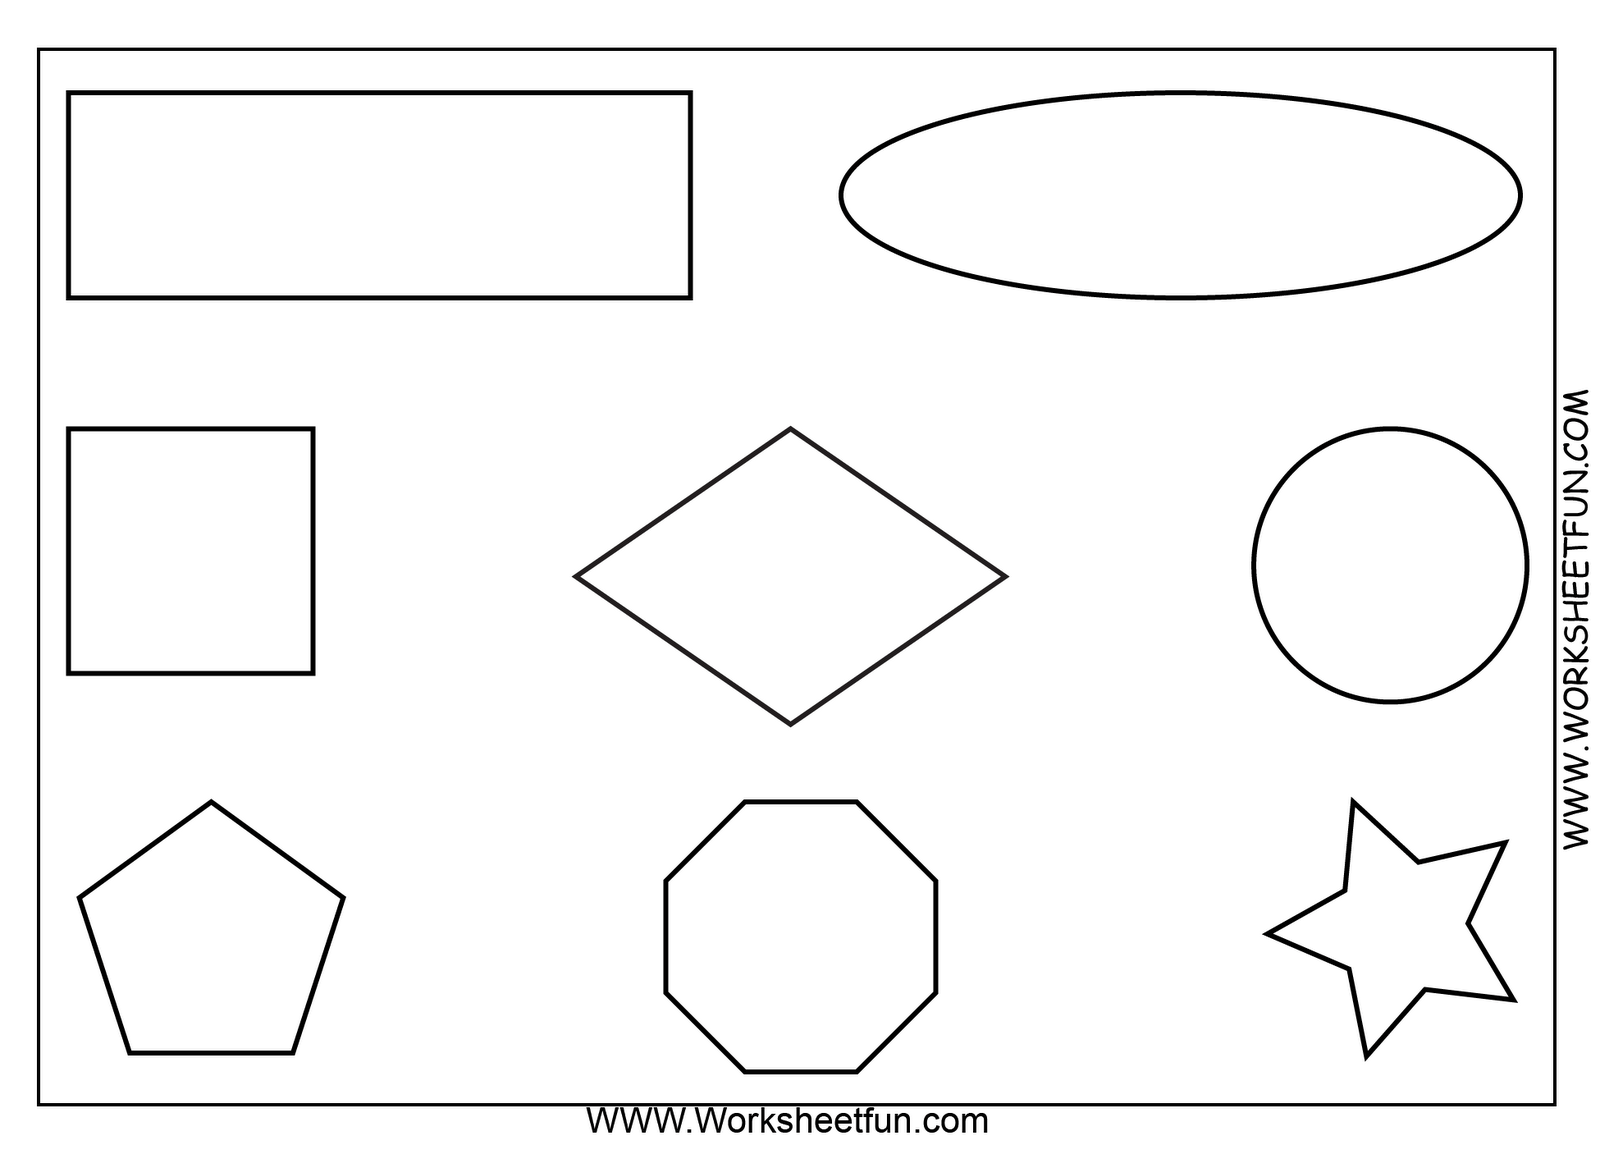 Free Printable Math Worksheets Use As An Oral Direction Exam Ex Color The Square Blue Etc